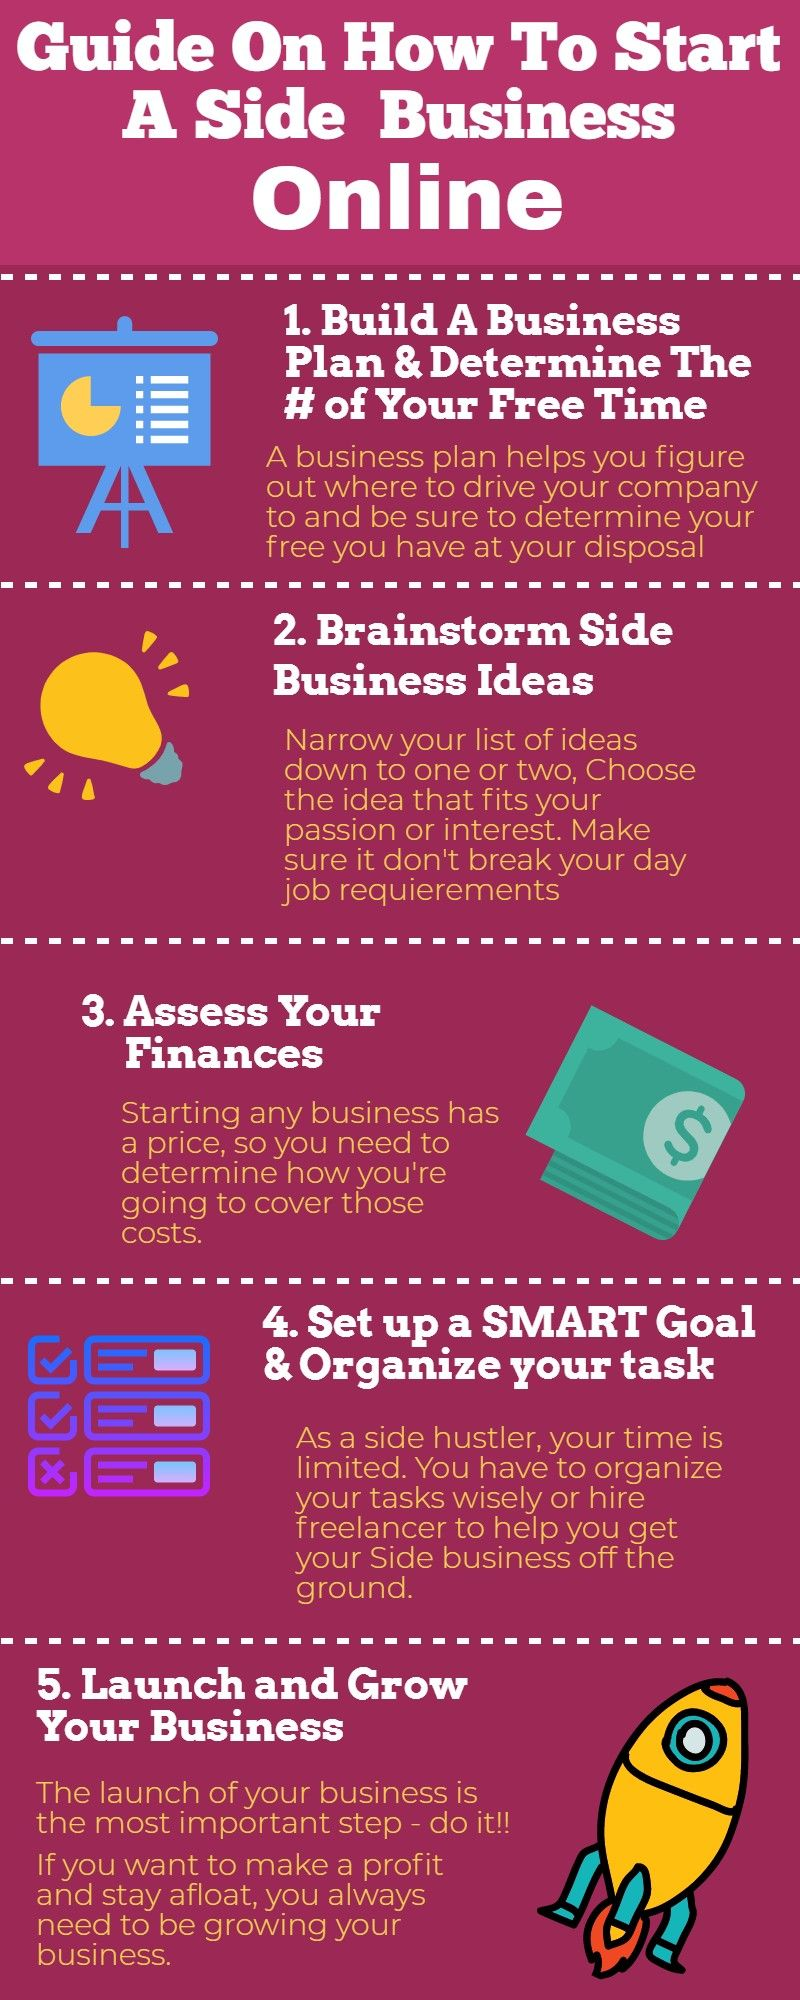 Infography image explaining how to start a side hustle online business